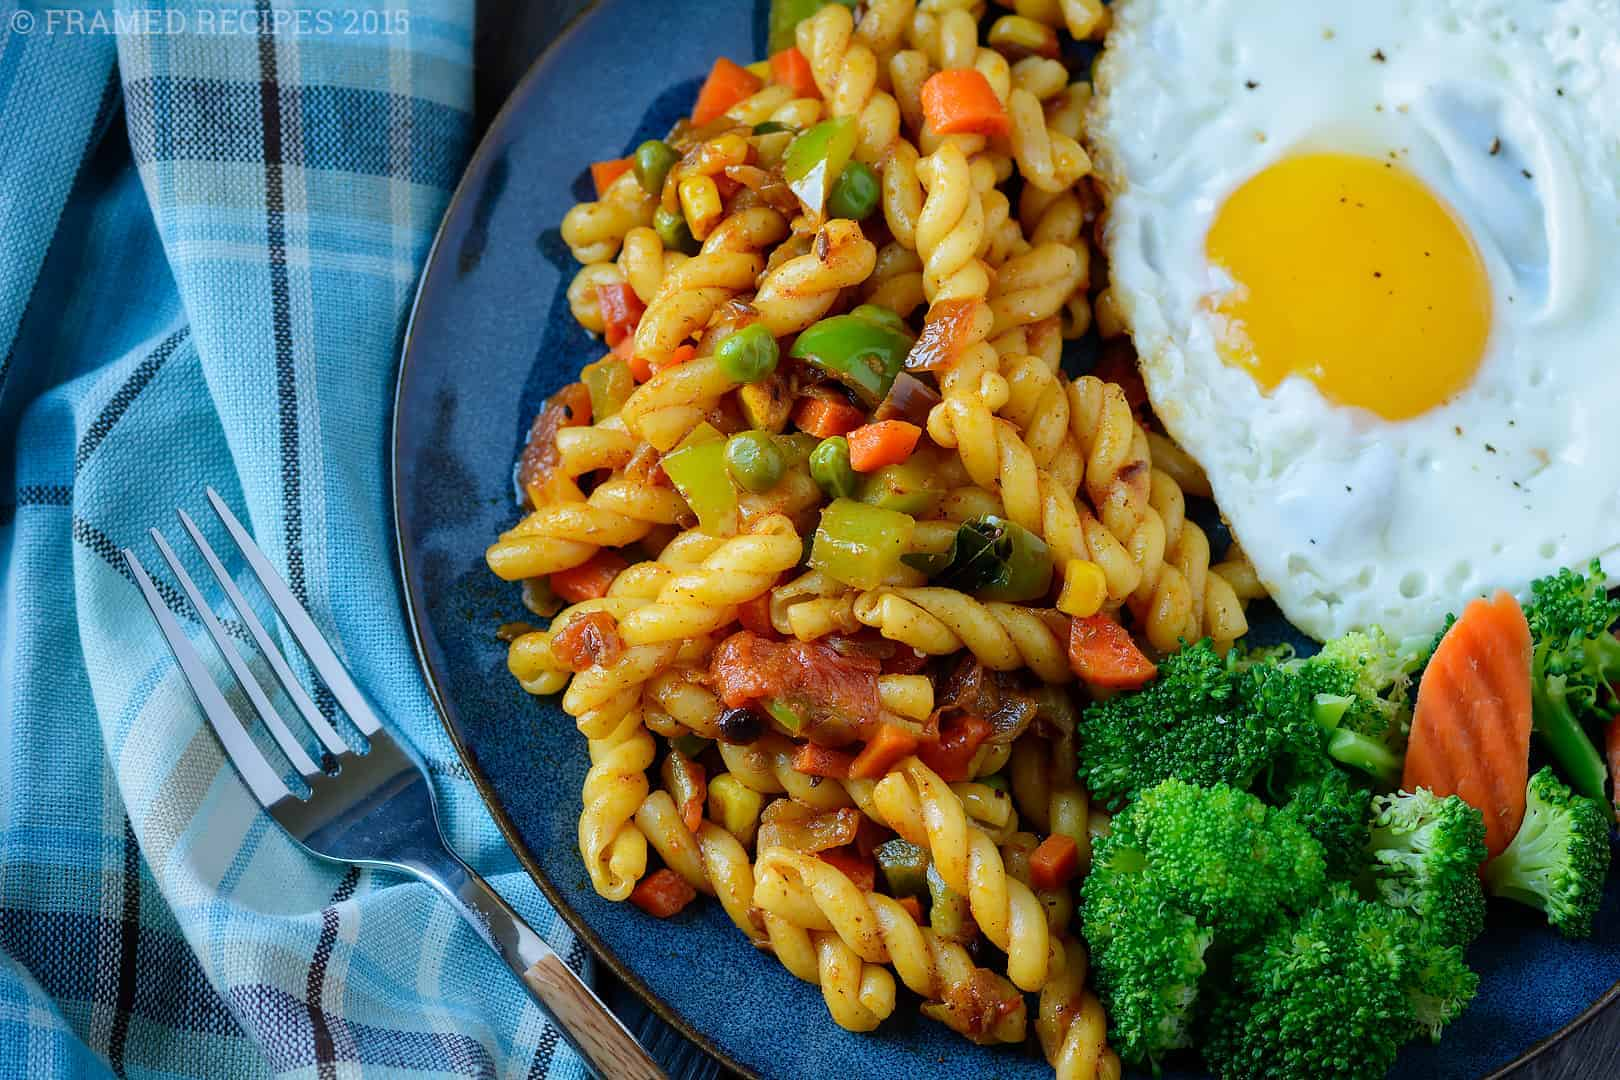 Indian masala pasta served with over-easy eggs and steamed broccoli and carrots.